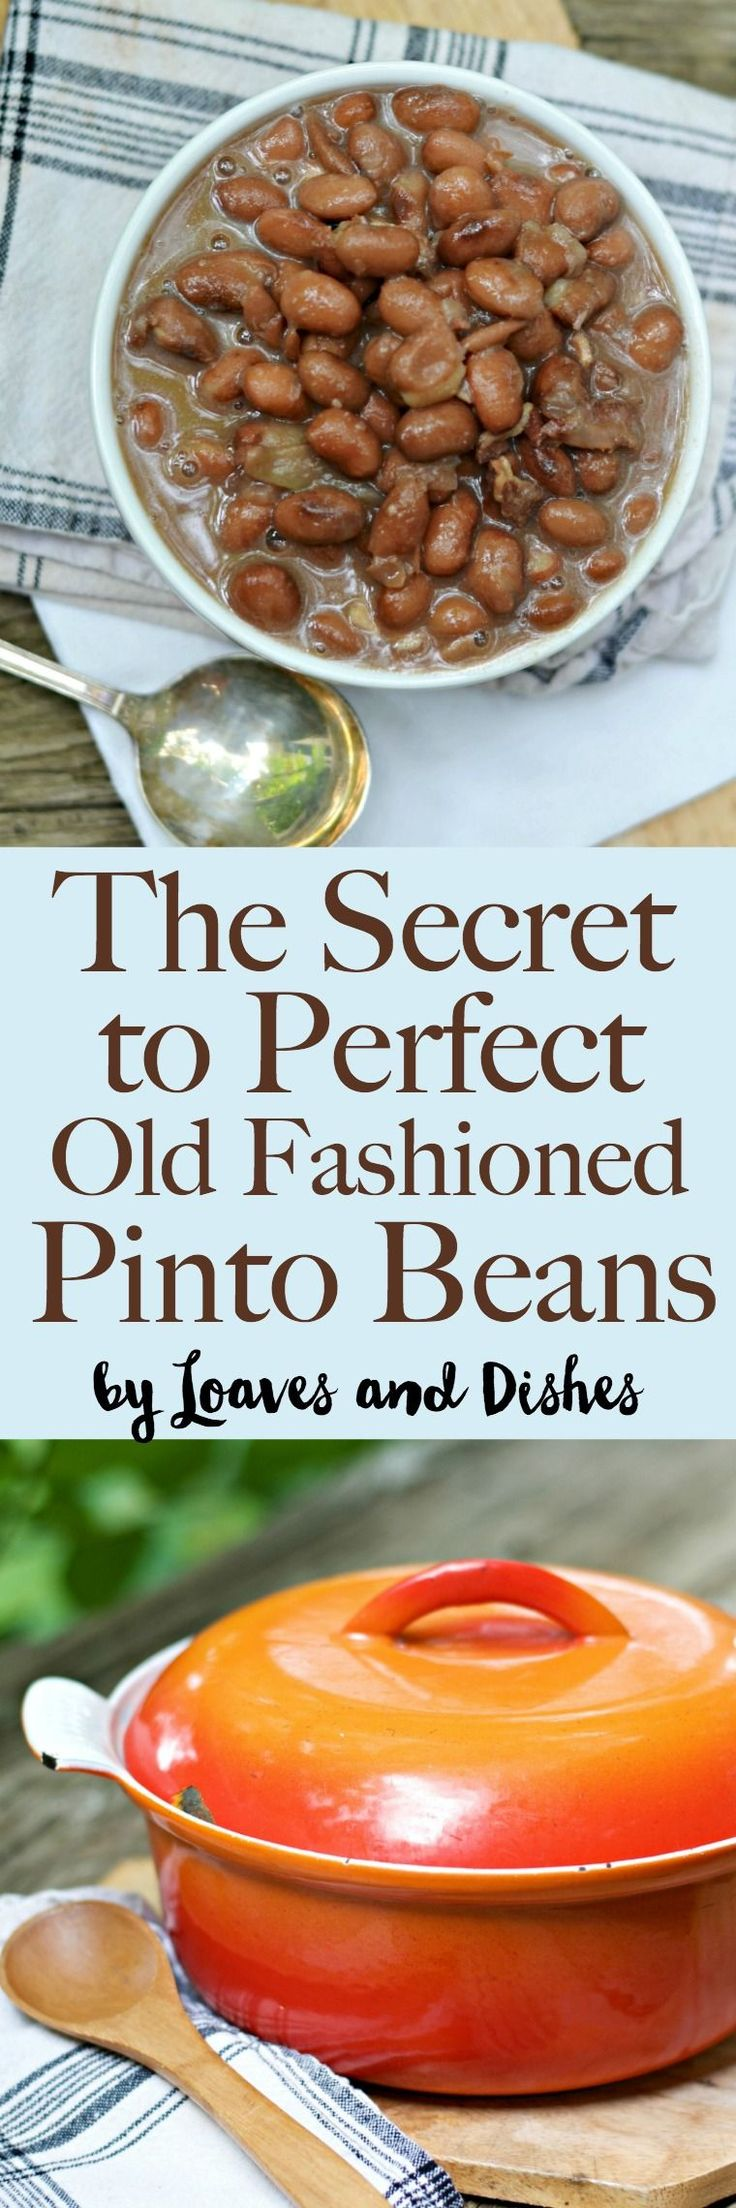 Recipes included for Perfect Pintos in the crockpot slow cooker, pressure cooker and on the stove top for perfect Southern Pinto beans every time. Just because they are easy doesn't mean they aren't delicious.